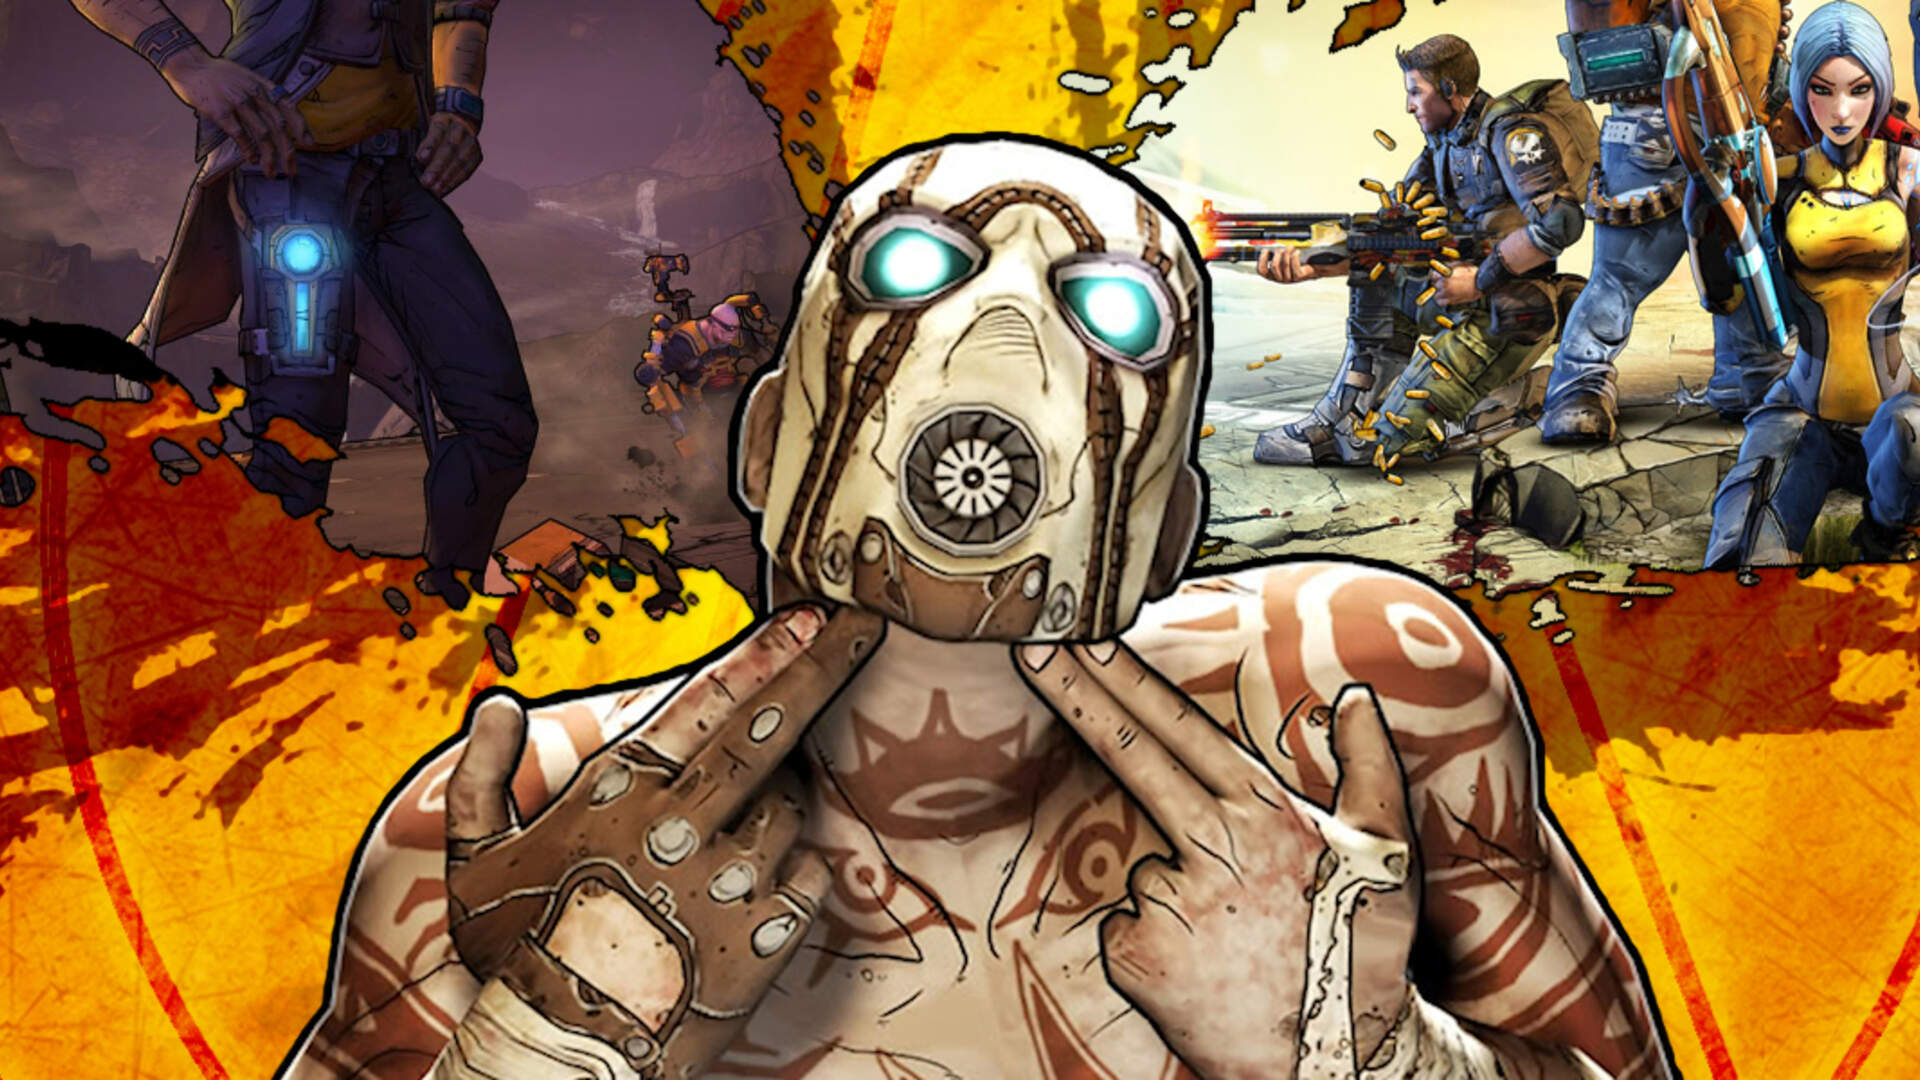 Gearbox Once Again Teases What is Almost Certainly Borderlands 3